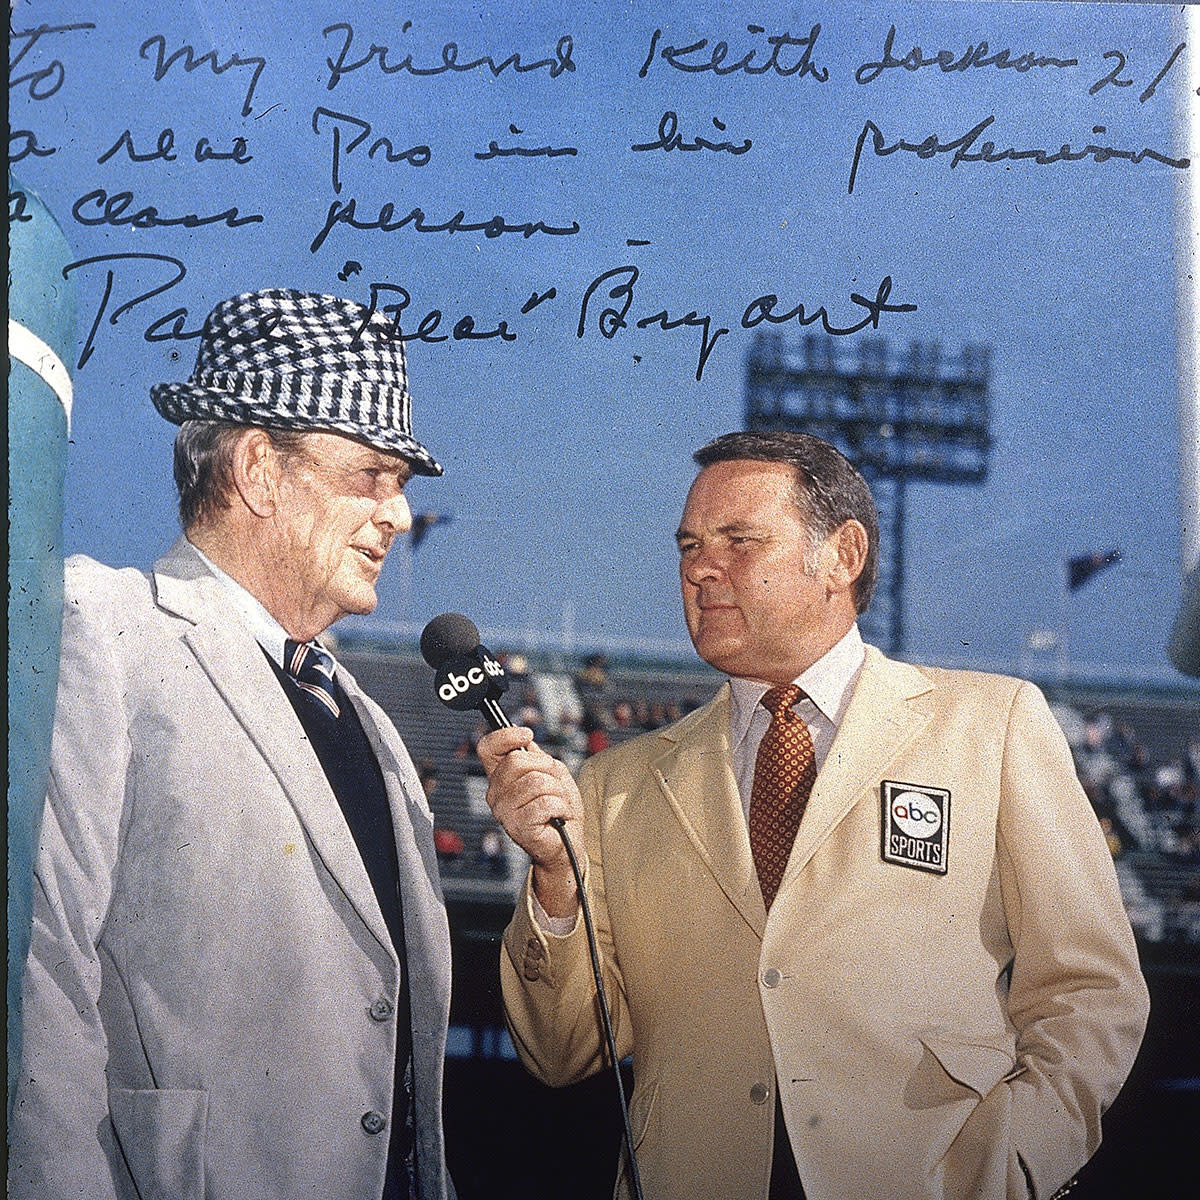 keith-jackson-bear-bryant-abc-sports-1200.jpg